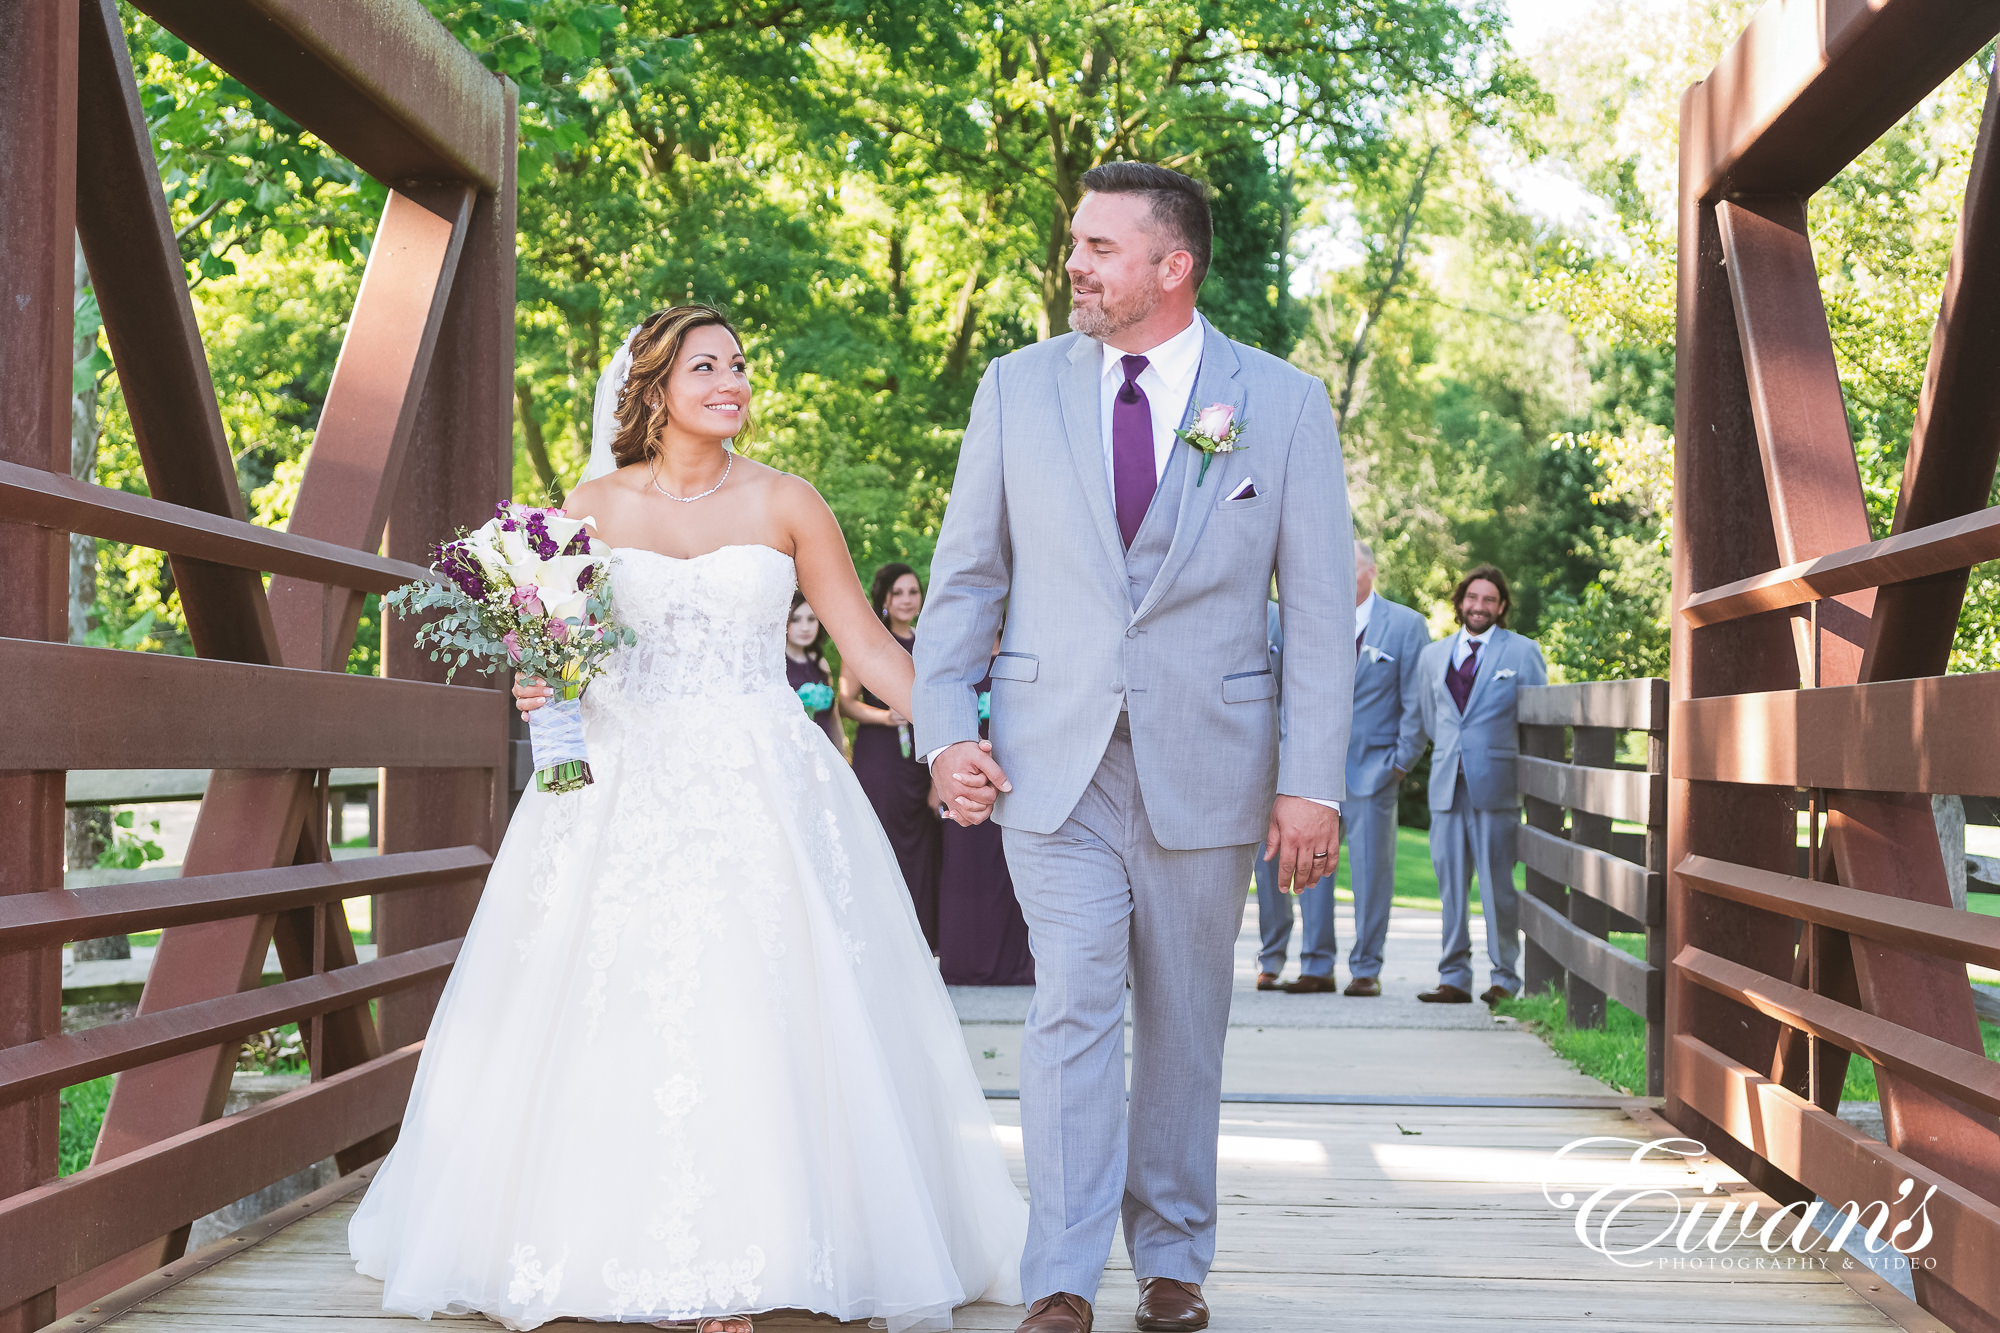 man in gray suit and woman in white wedding dress walking on sidewalk during daytime